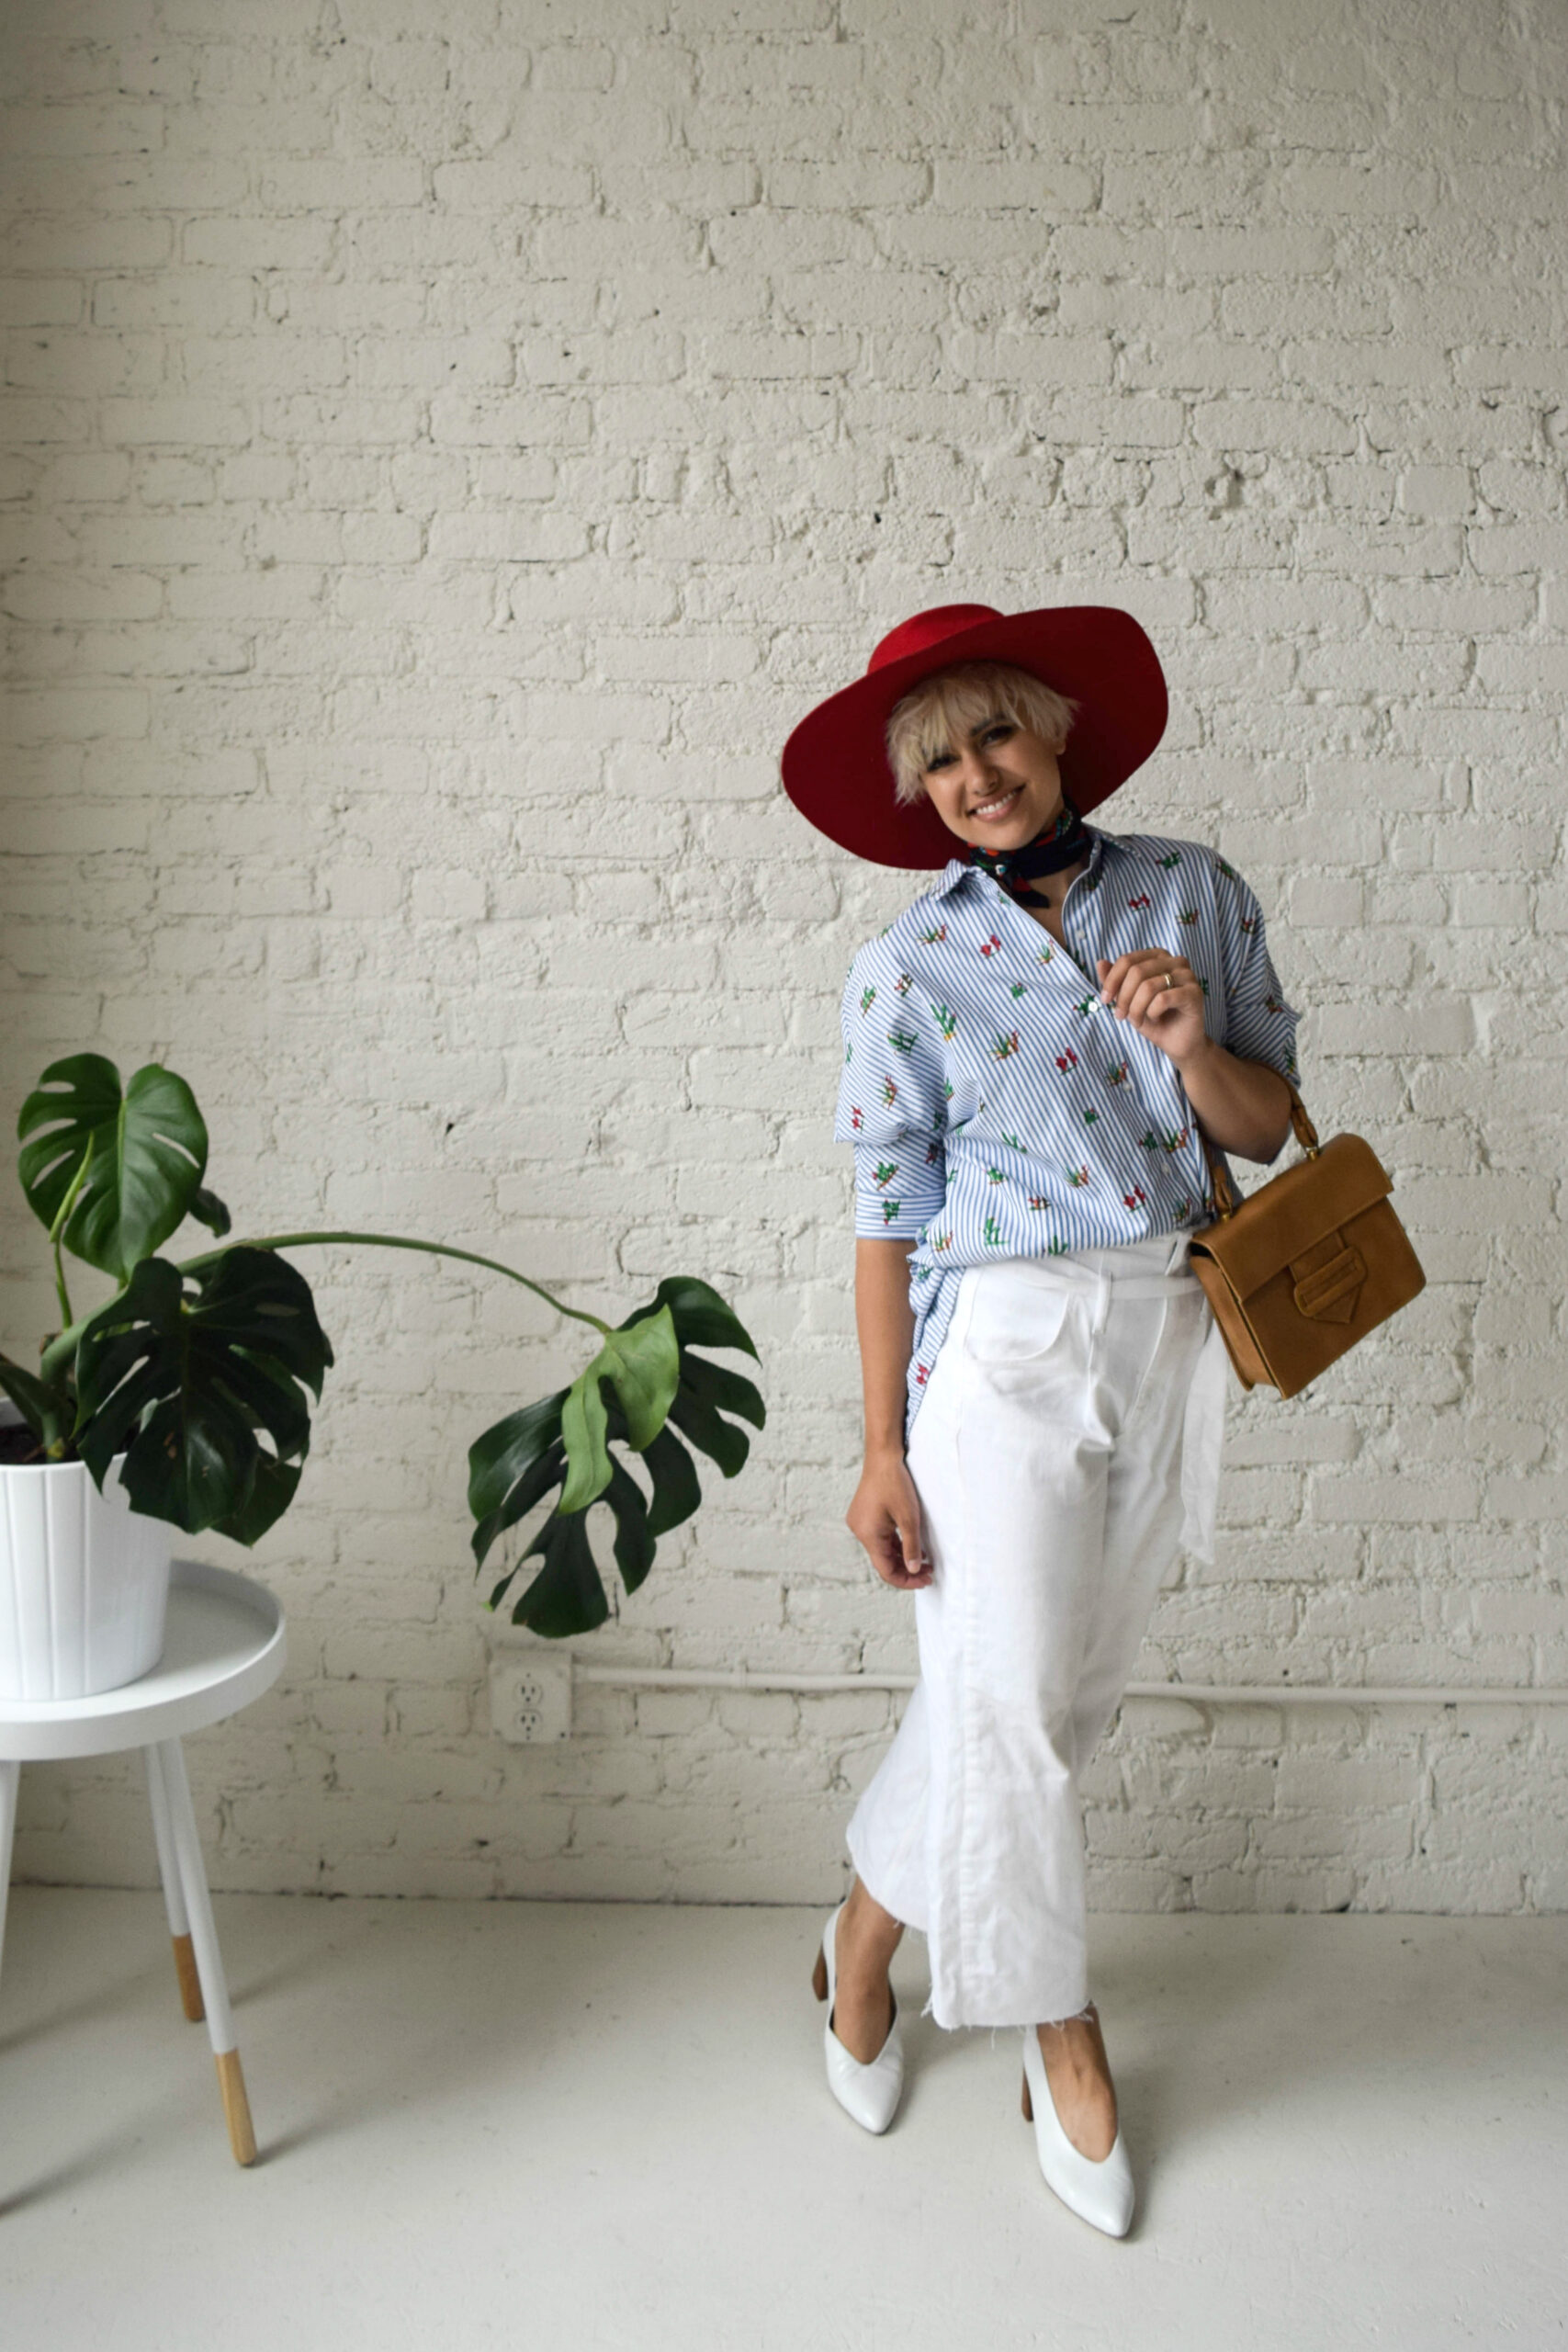 Wide Leg White Jeans and a button up: Vacation trends -BloggerNotBillionaire.com